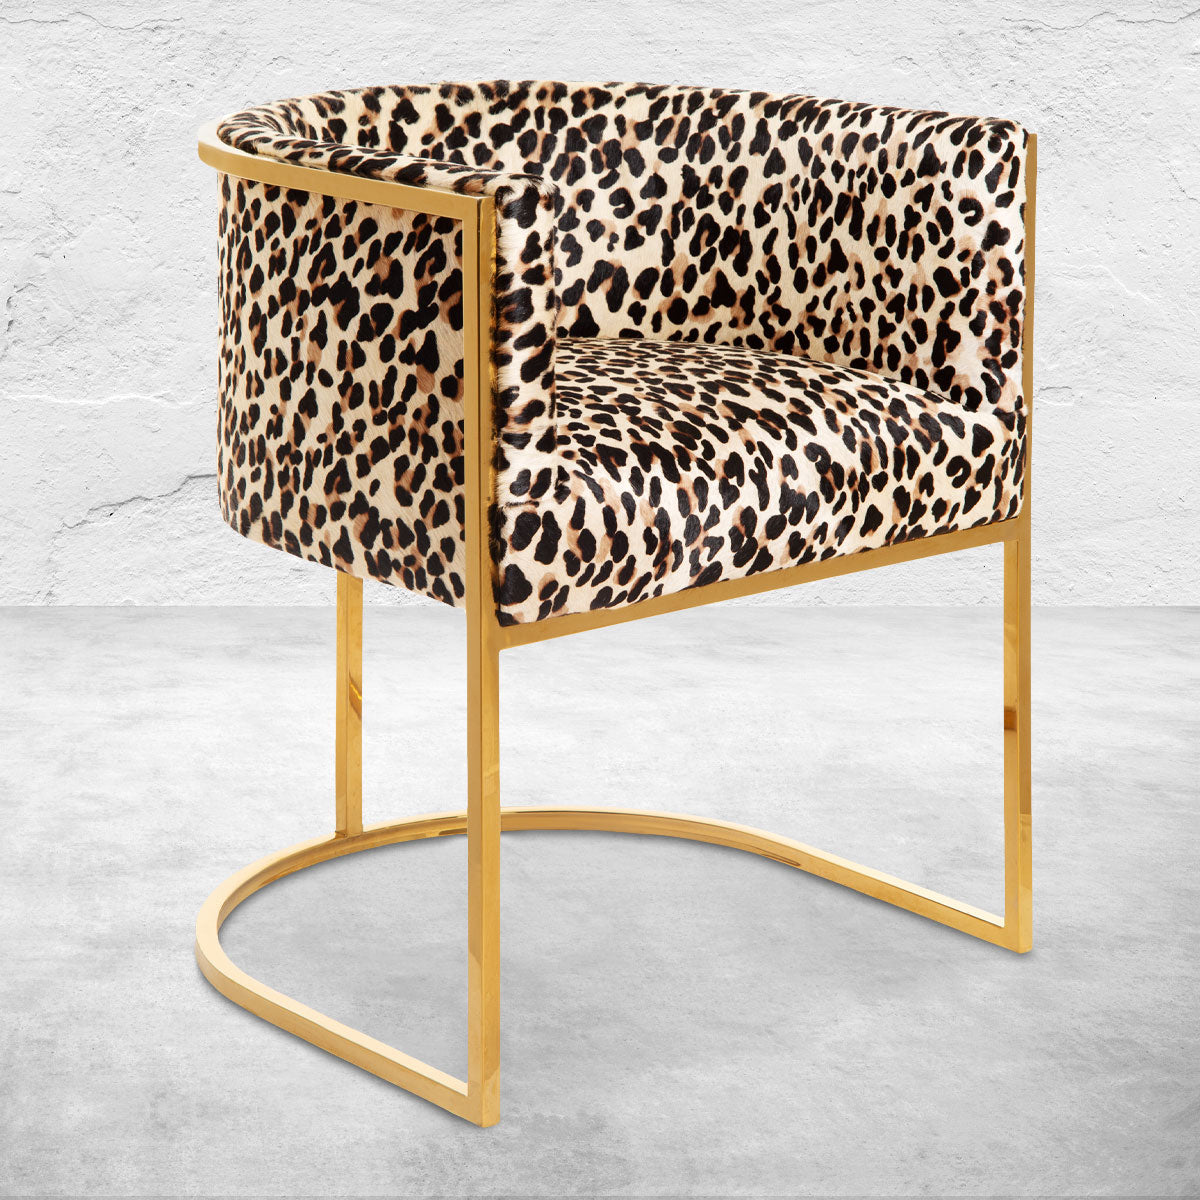 Lisbon Dining Chair in Leopard Print Cowhide